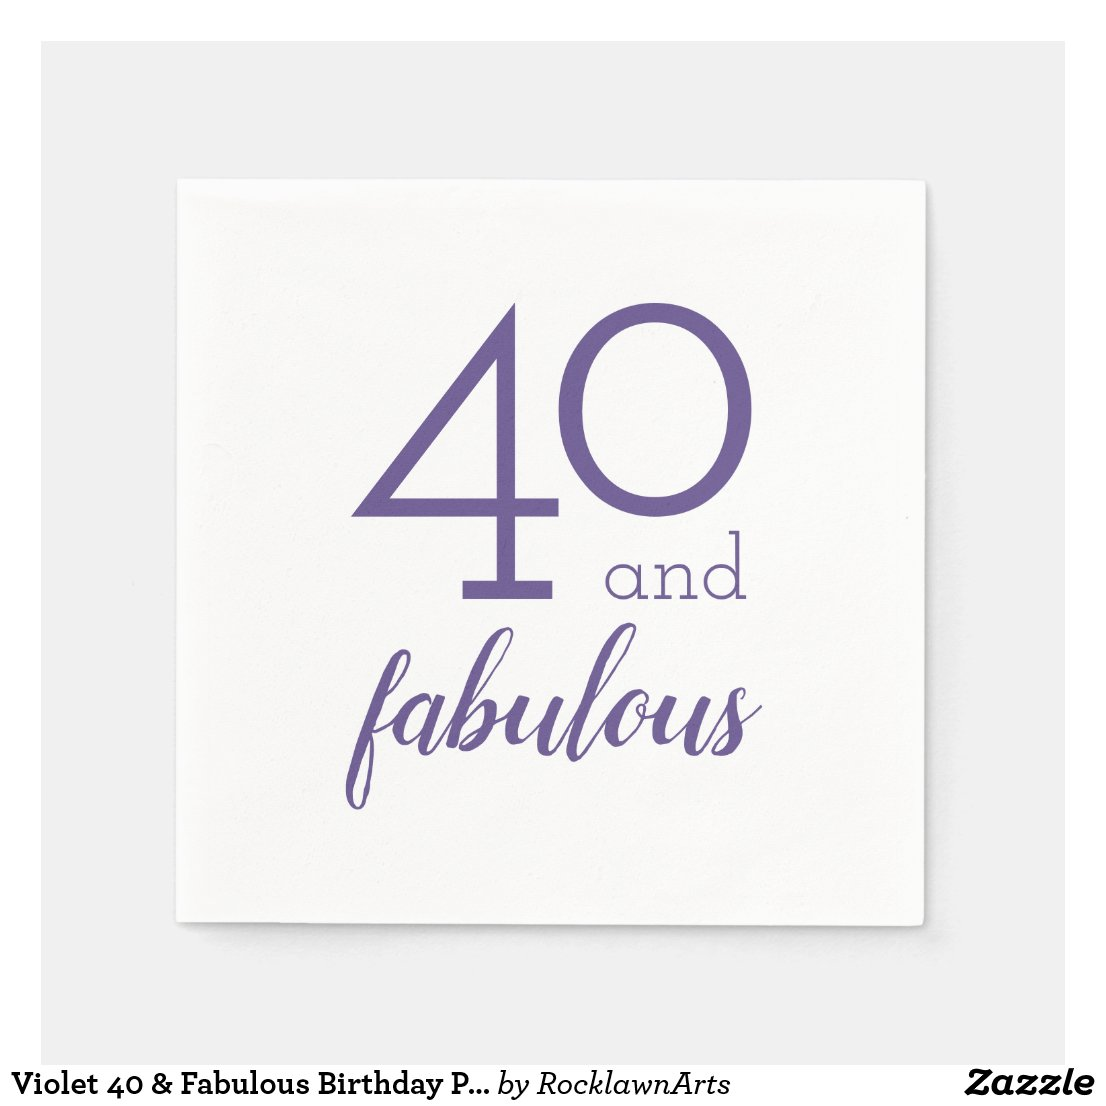 40 and Fabulous Party Supplies and Gifts